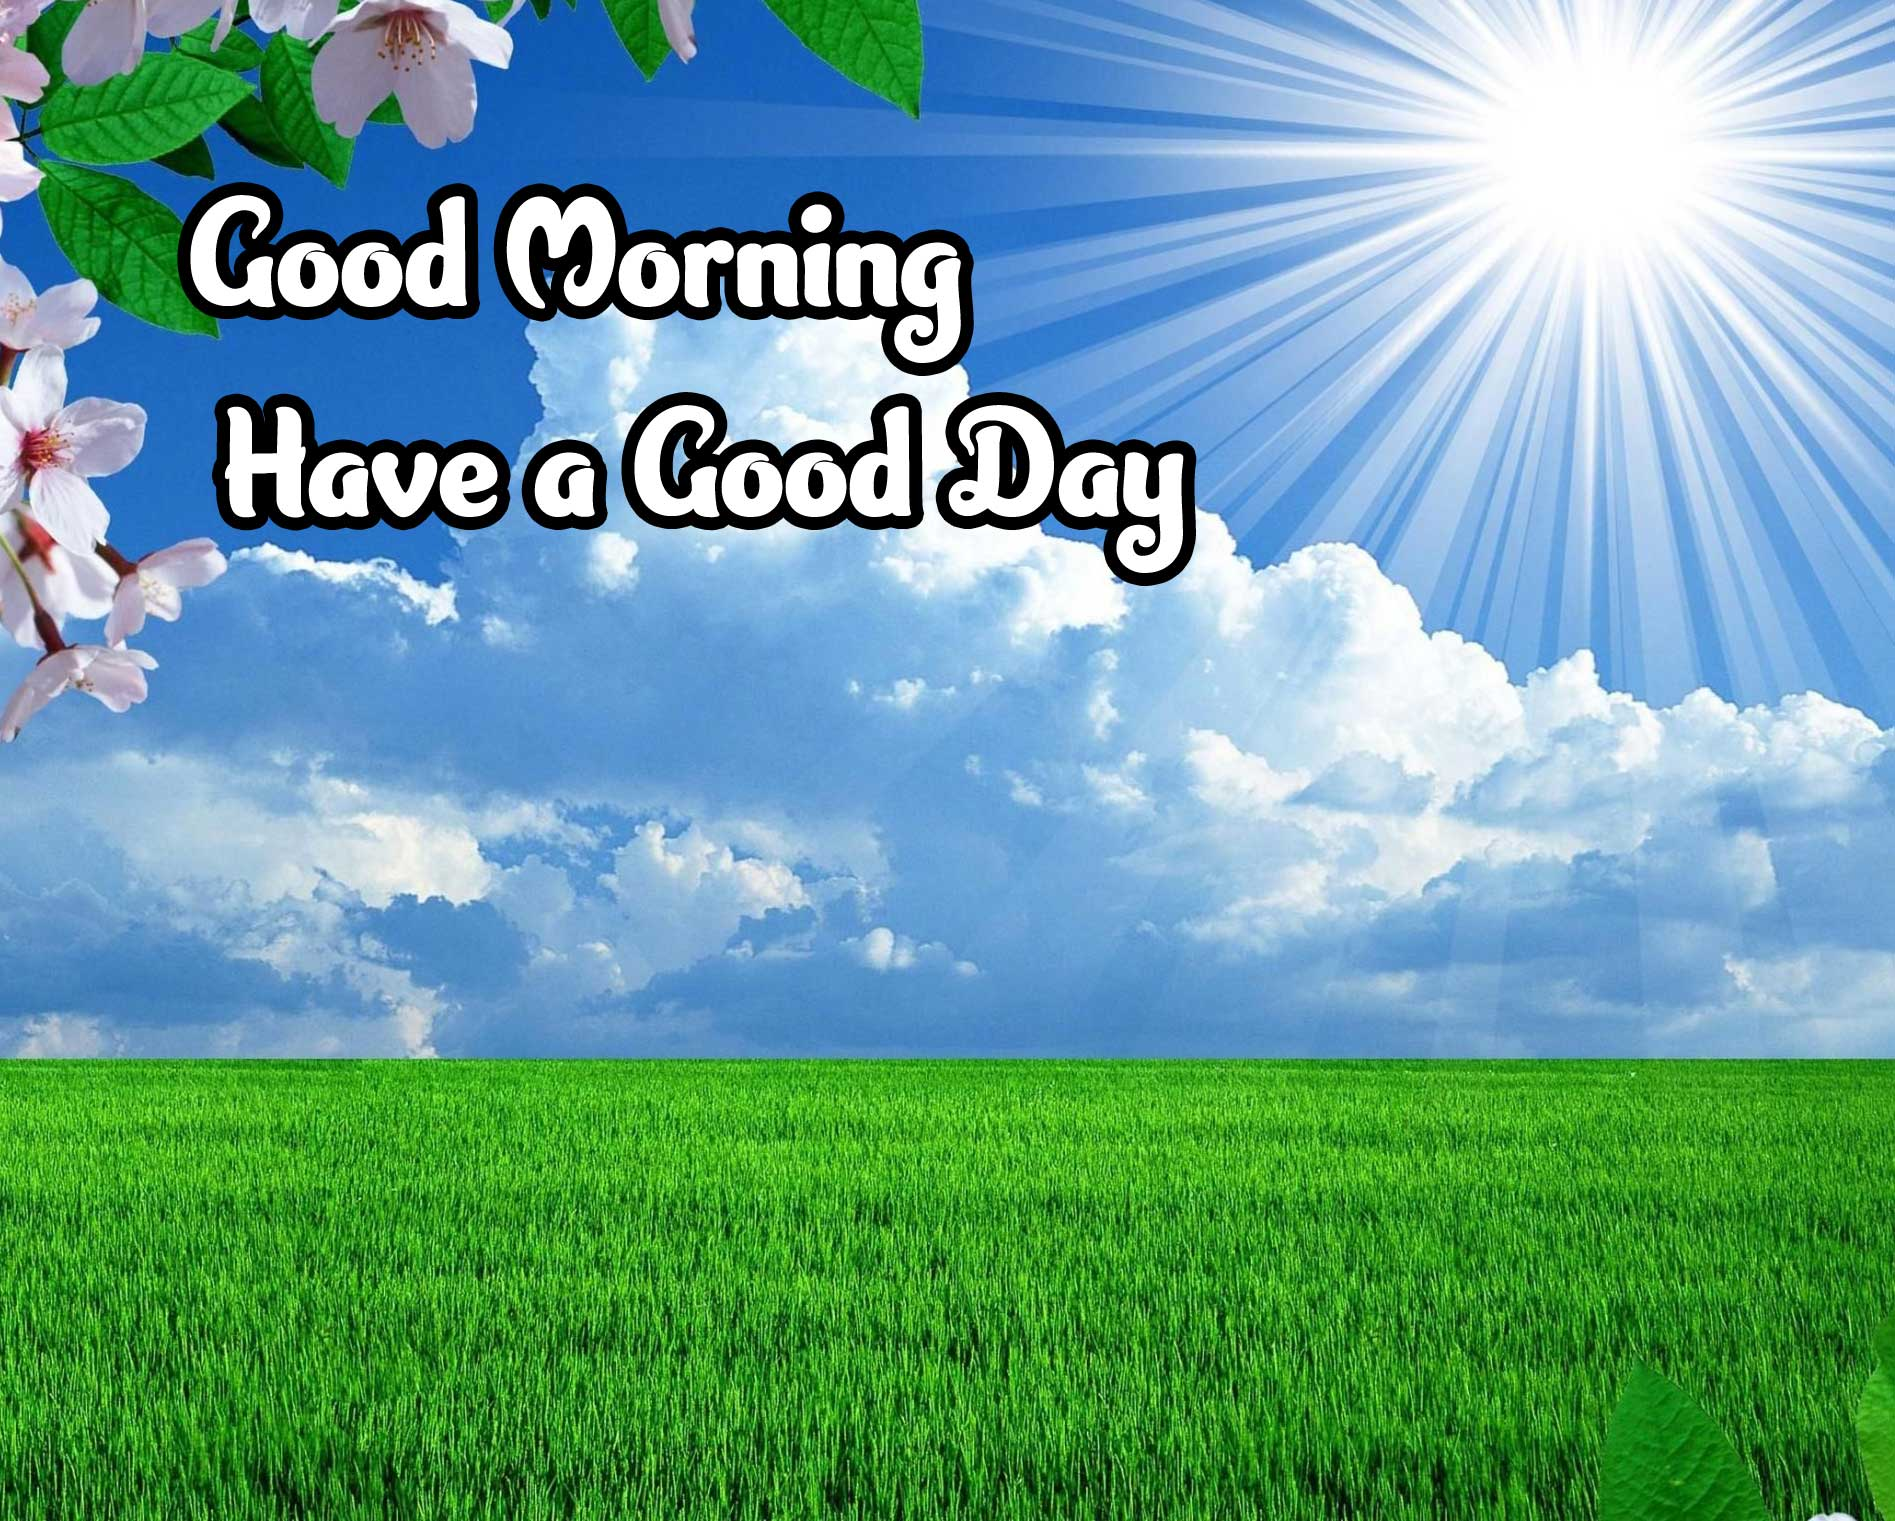 Good Morning Wishes Images 4K 1080p Photo HD Download